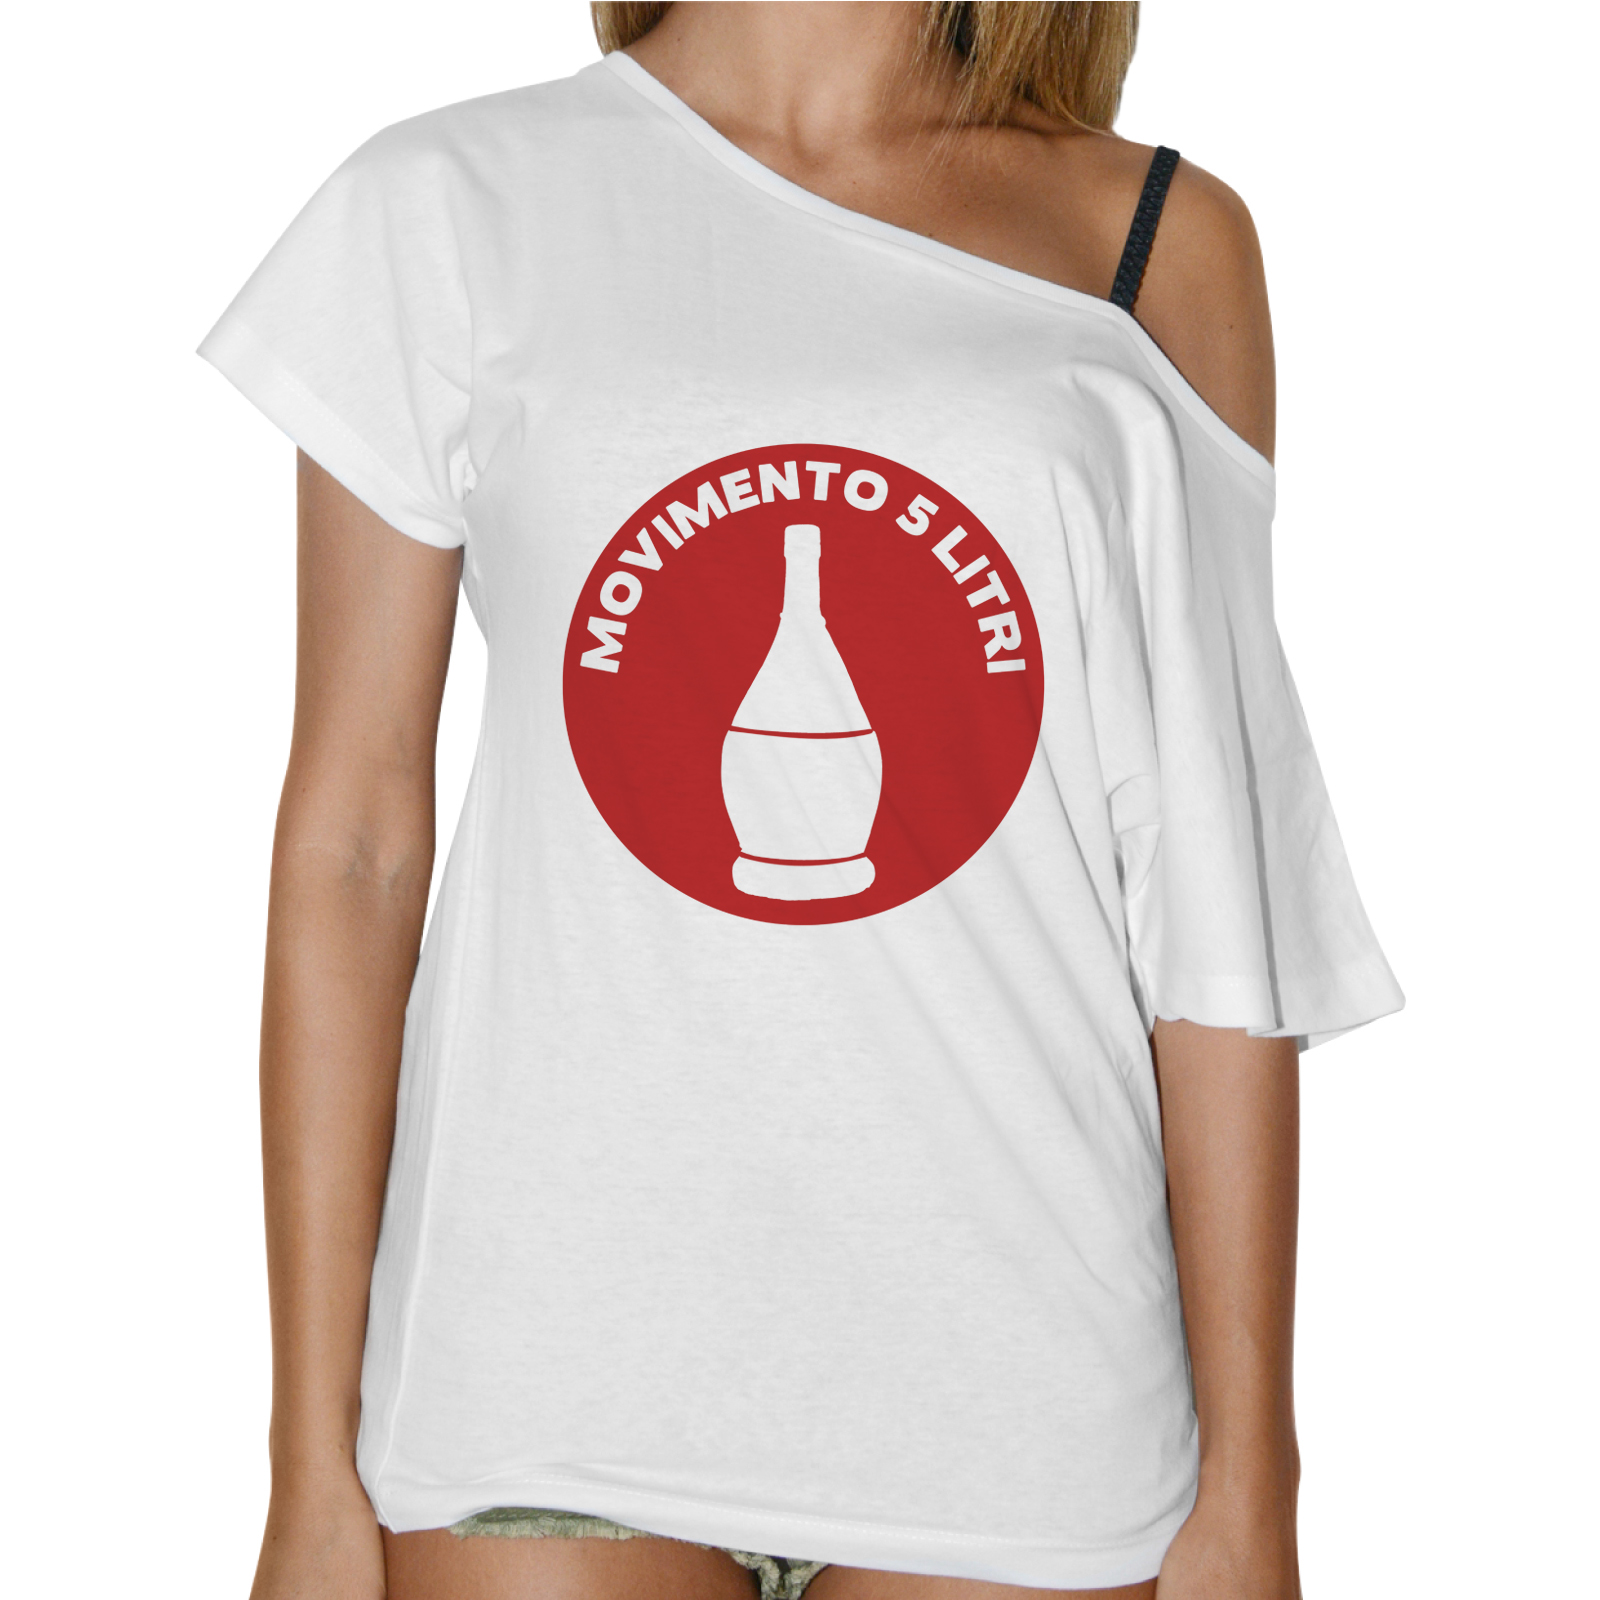 T-Shirt Donna Collo Barca MOVIMENTO 5 LITRI